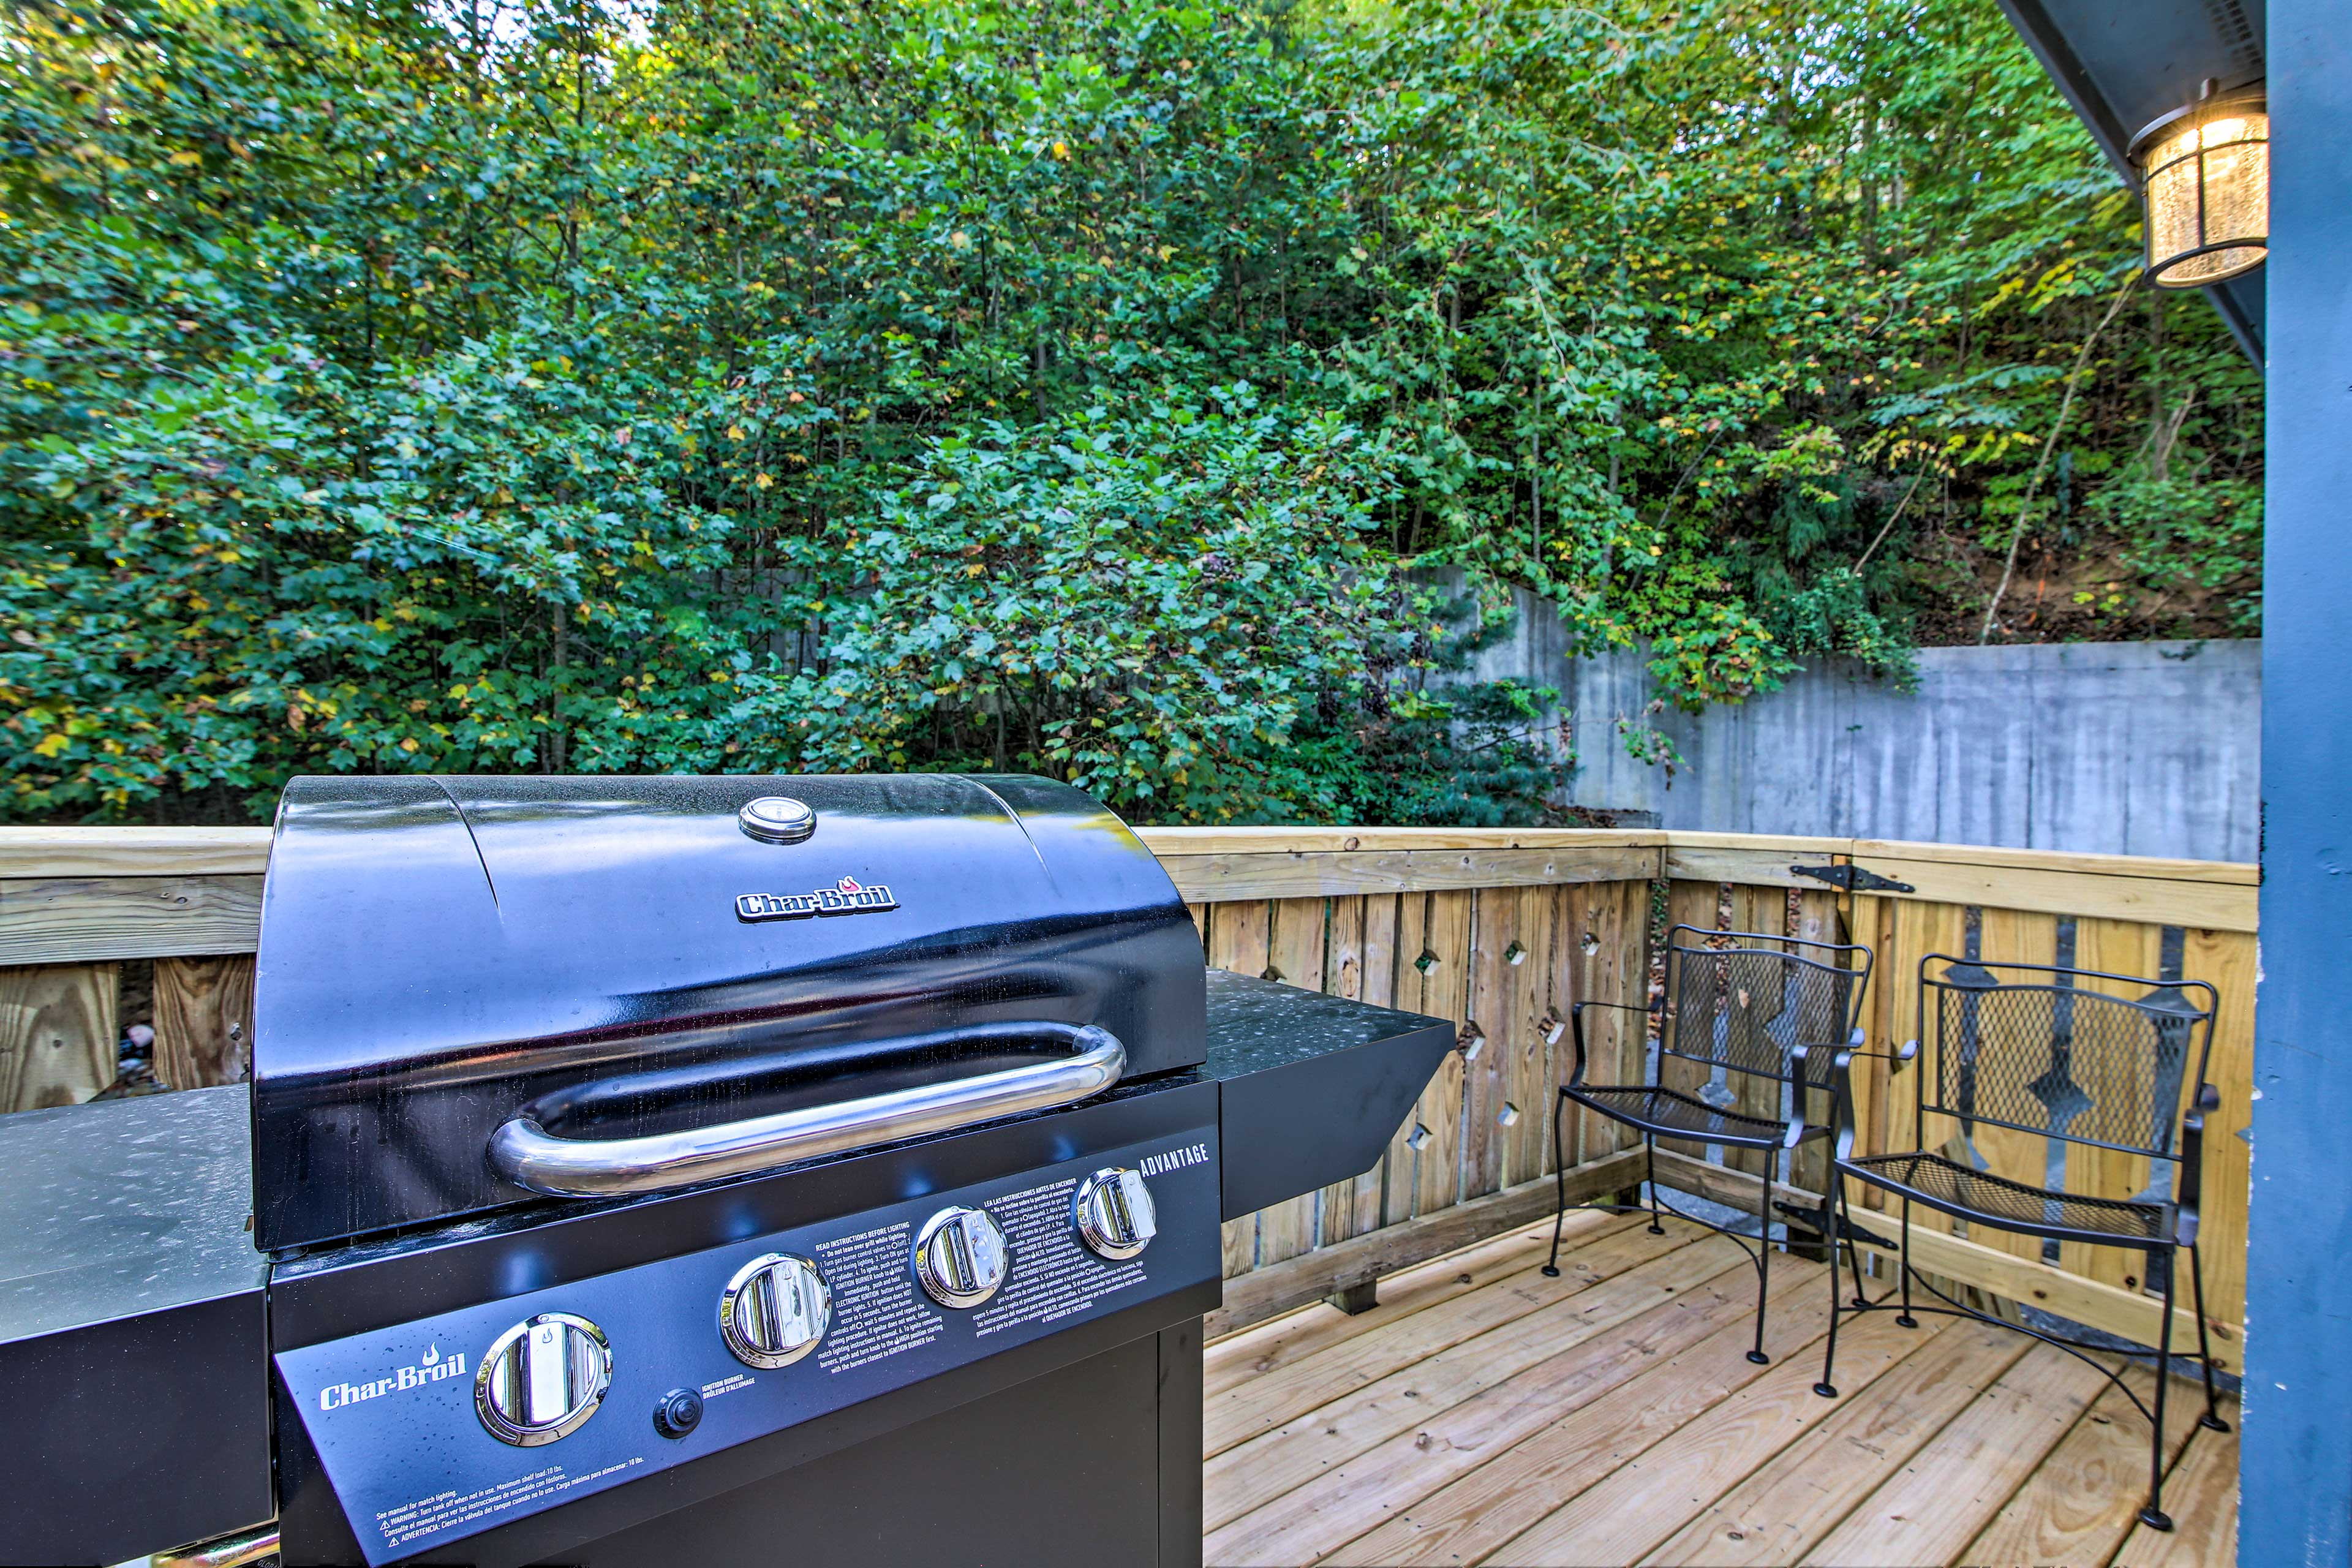 Fire up the grill and have a cook out.